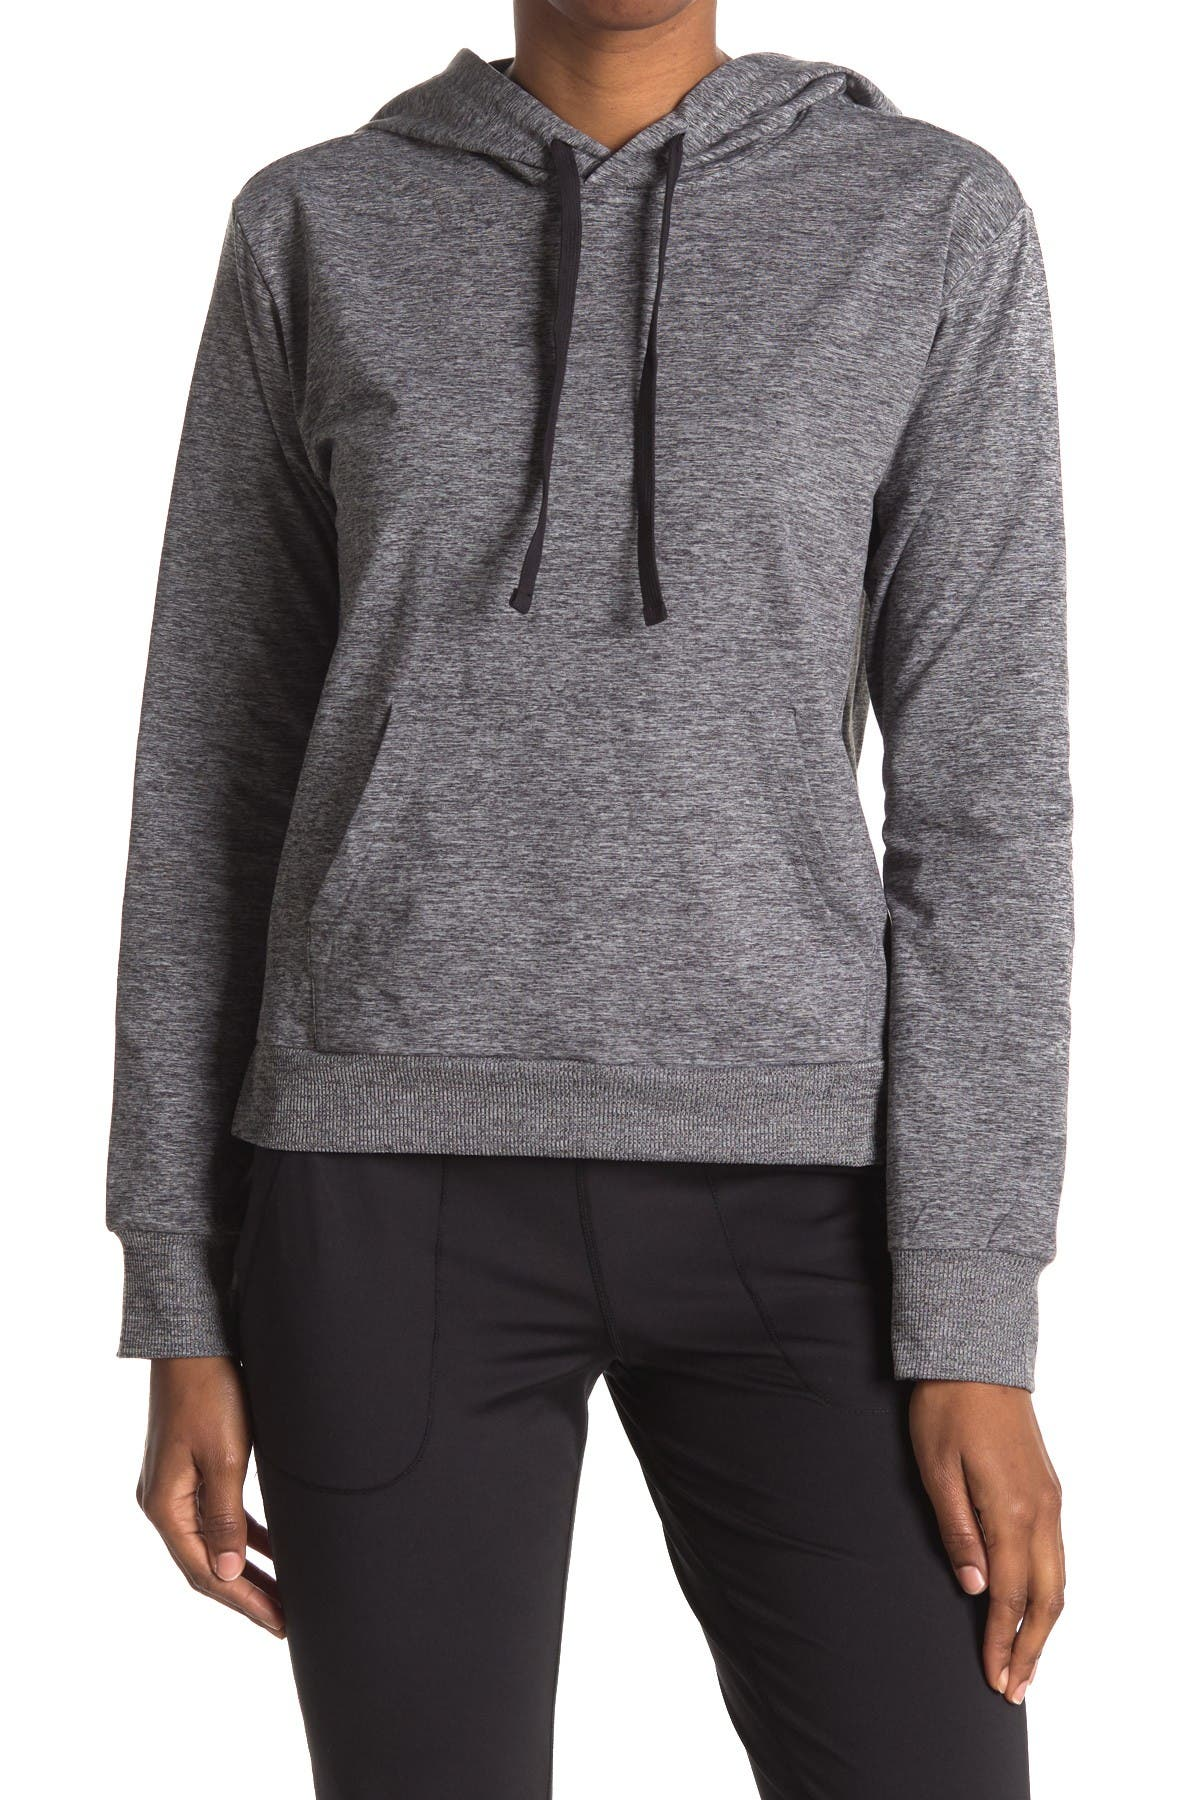 Image of Z By Zella Take A Hike Performance Hoodie